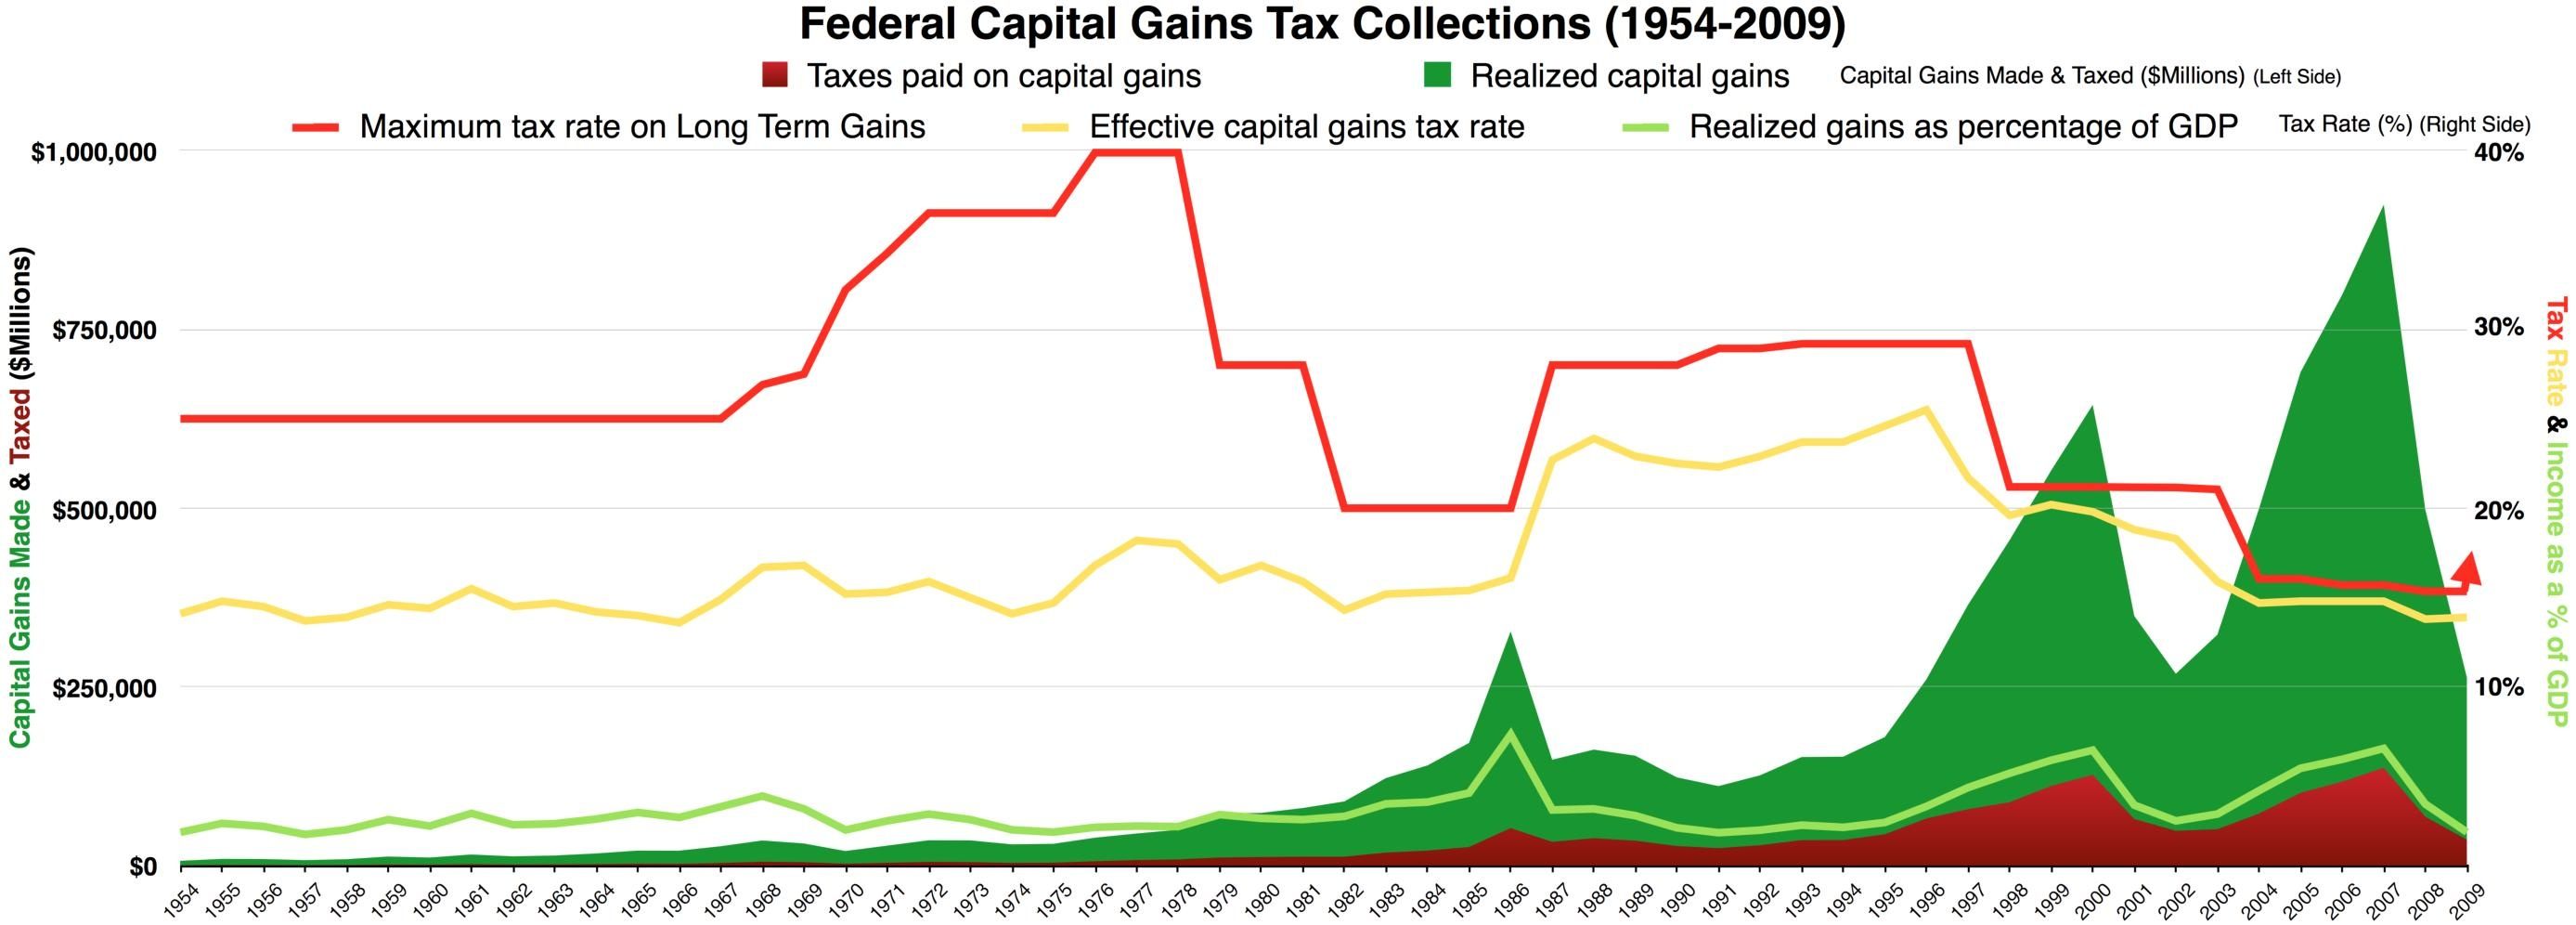 File Federal Capital Gains Tax Collections